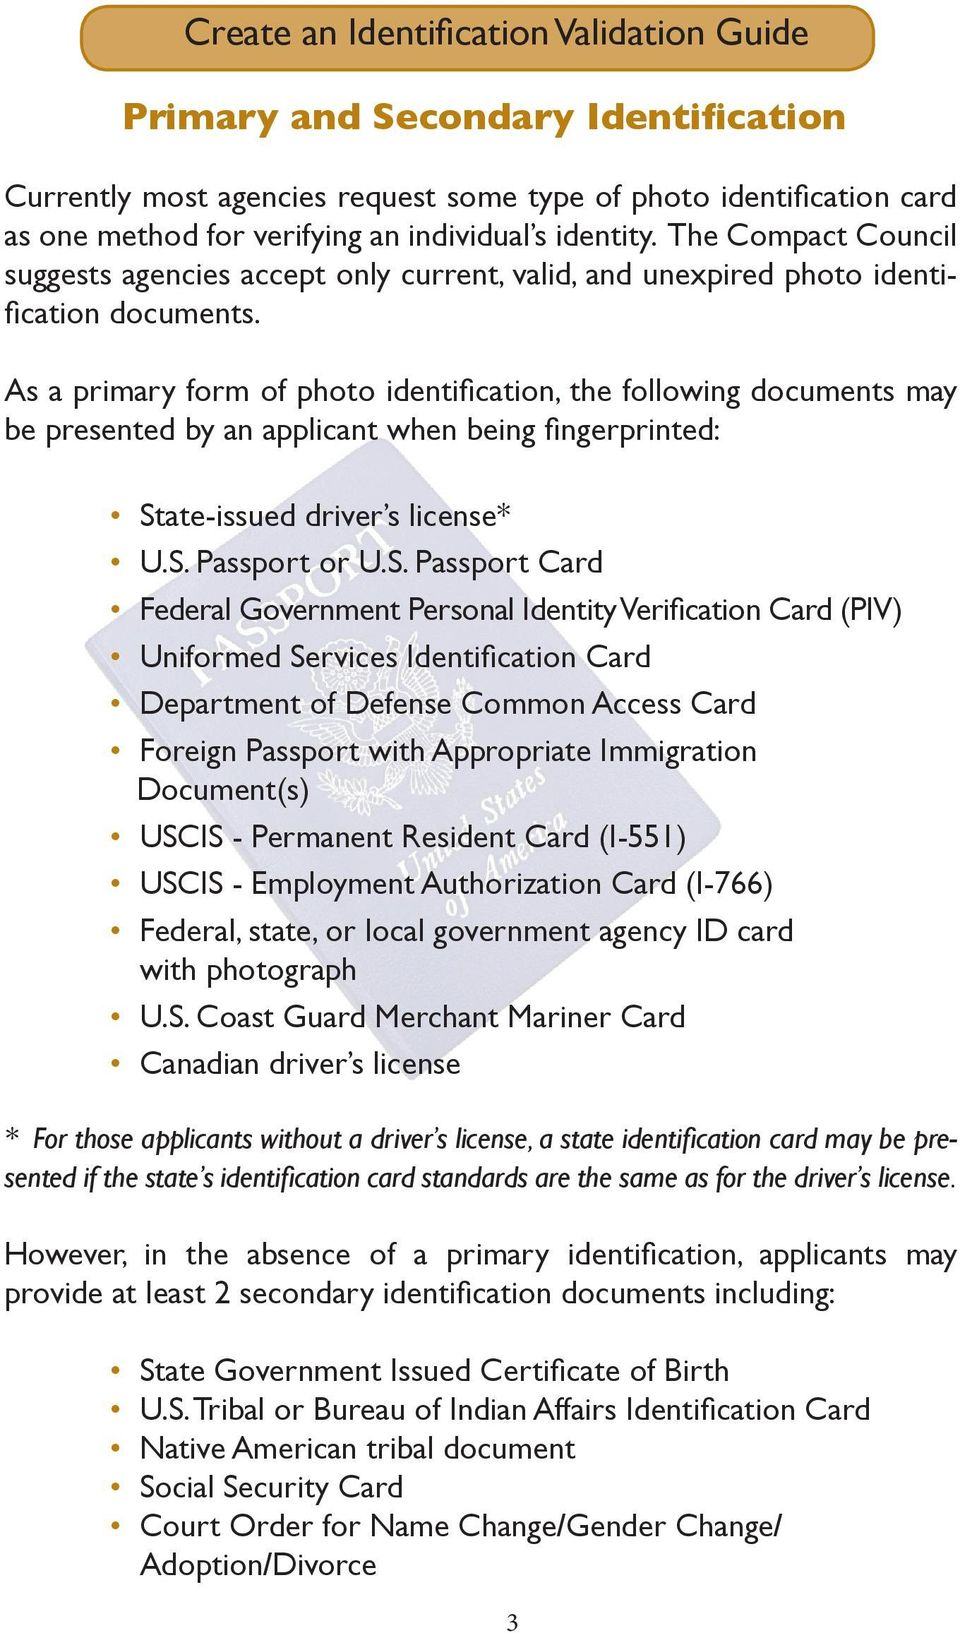 As a primary form of photo identification, the following documents may be presented by an applicant when being fingerprinted: St